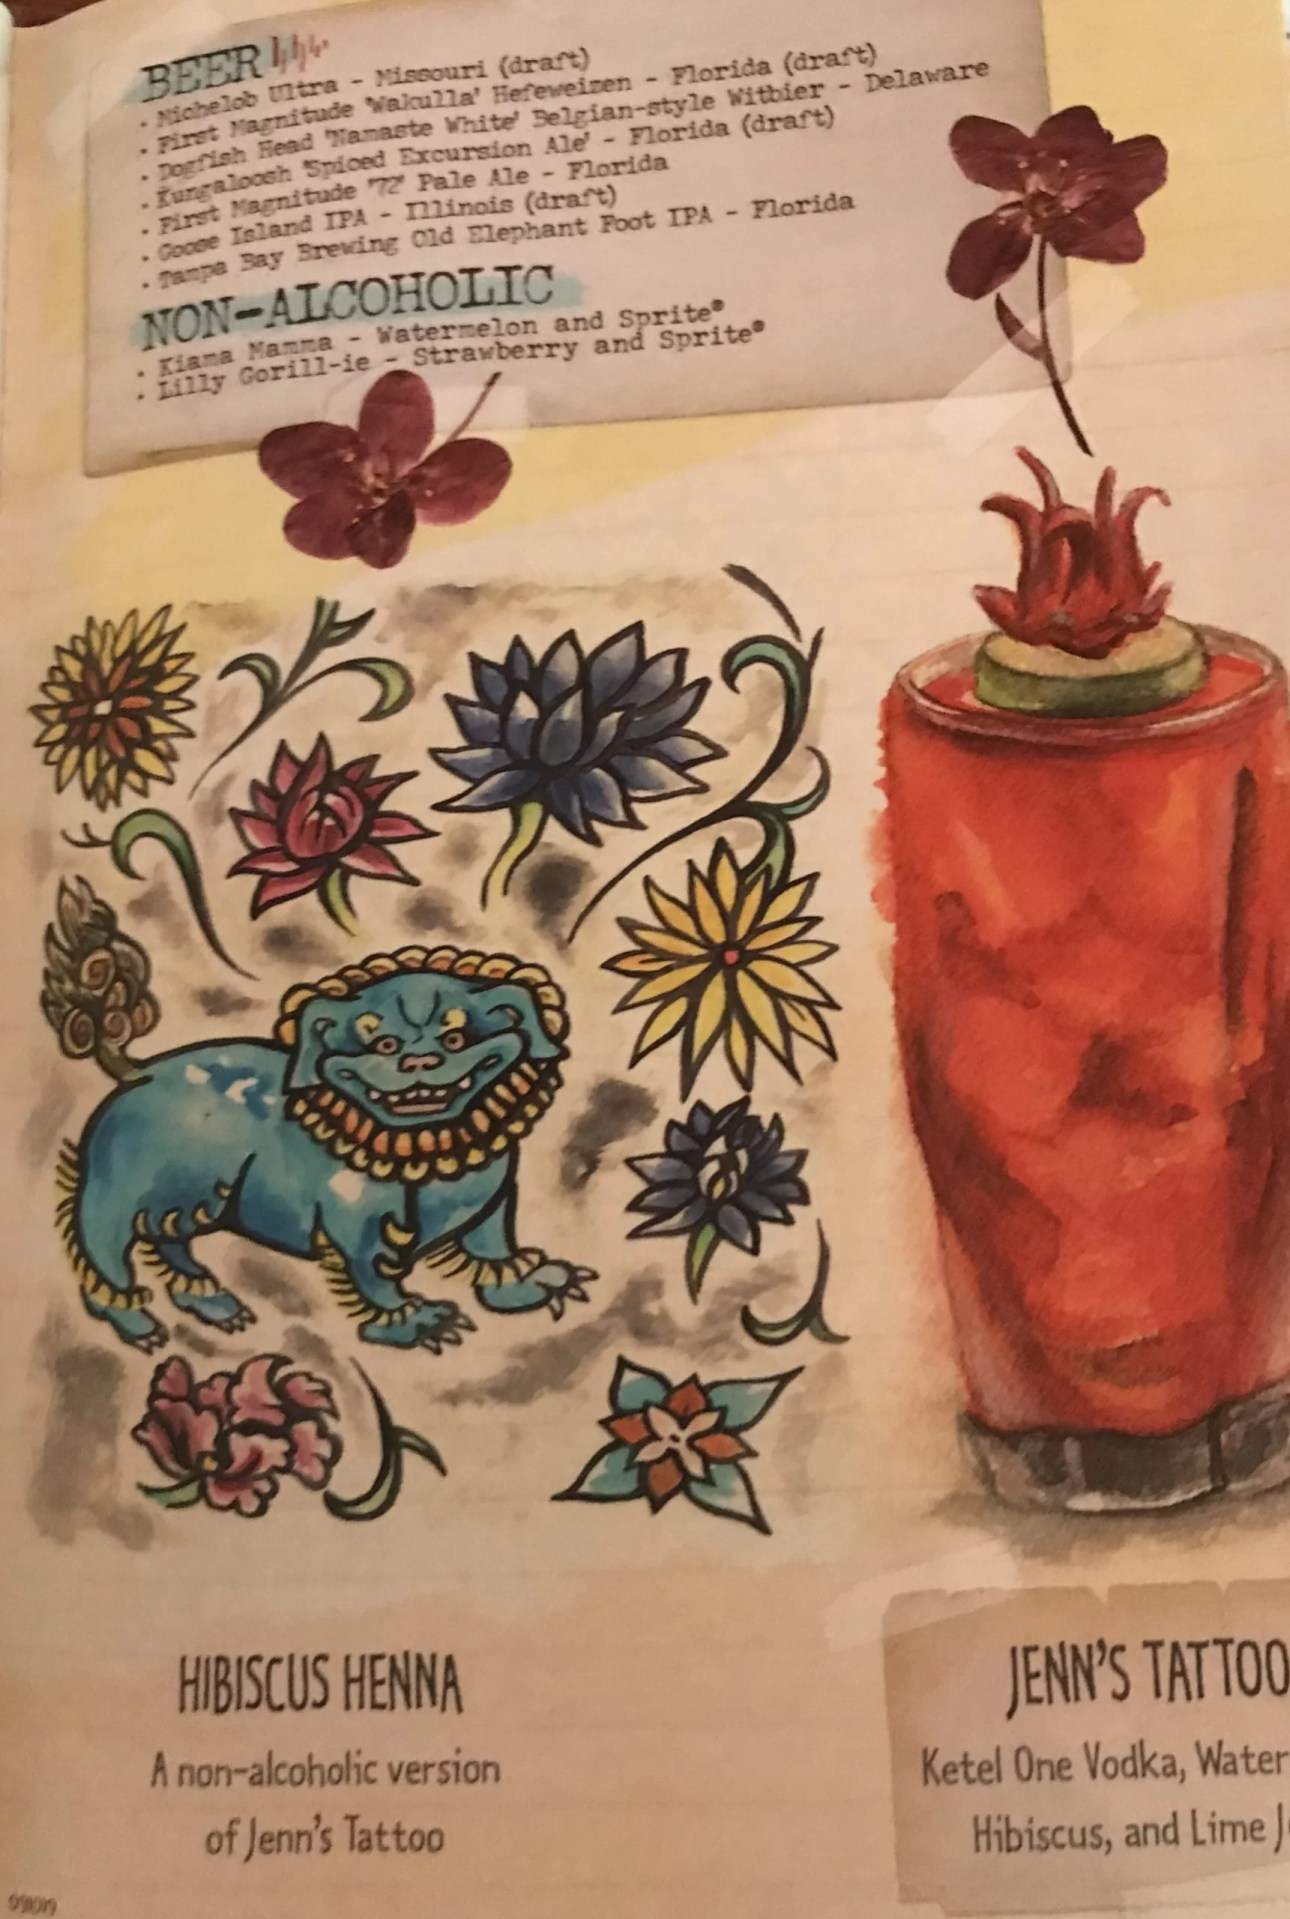 Jenns Tattoo in Cocktail Book at Nomad Lounge